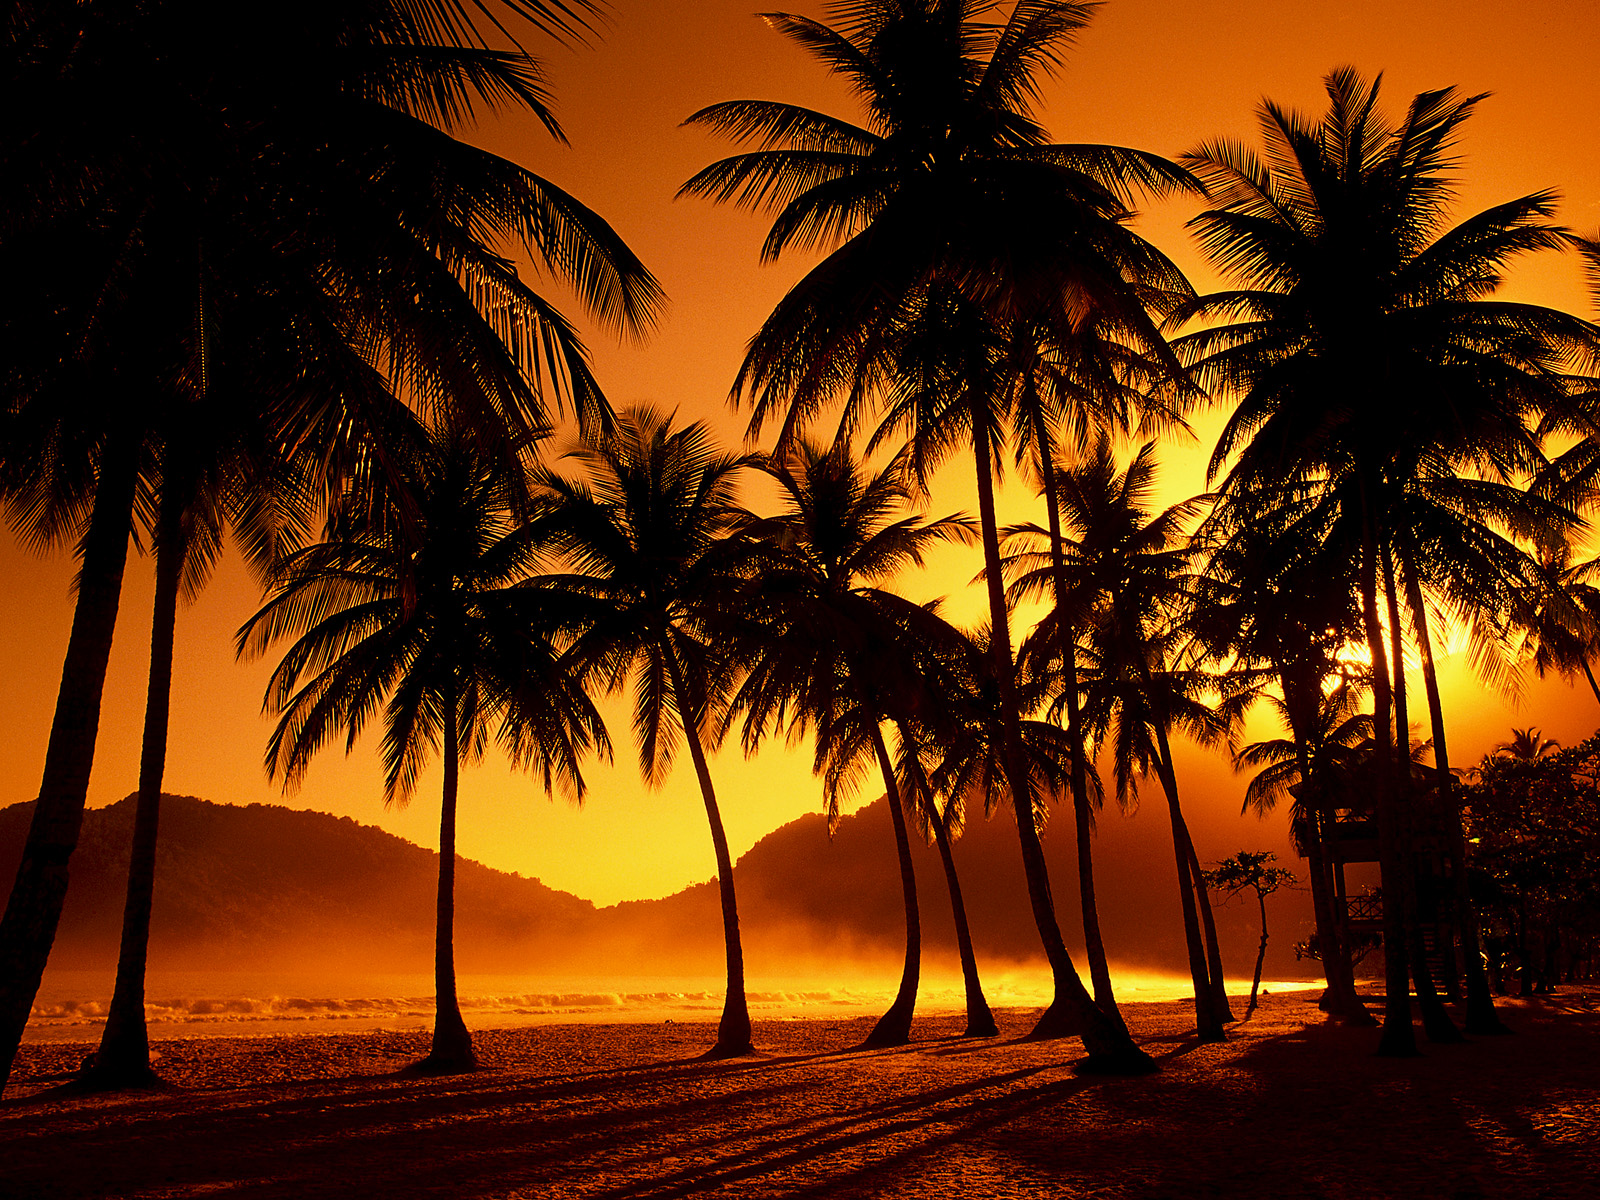 Beach Sunset Palm Tree Tumblr Hd Desktop 10 HD Wallpapers